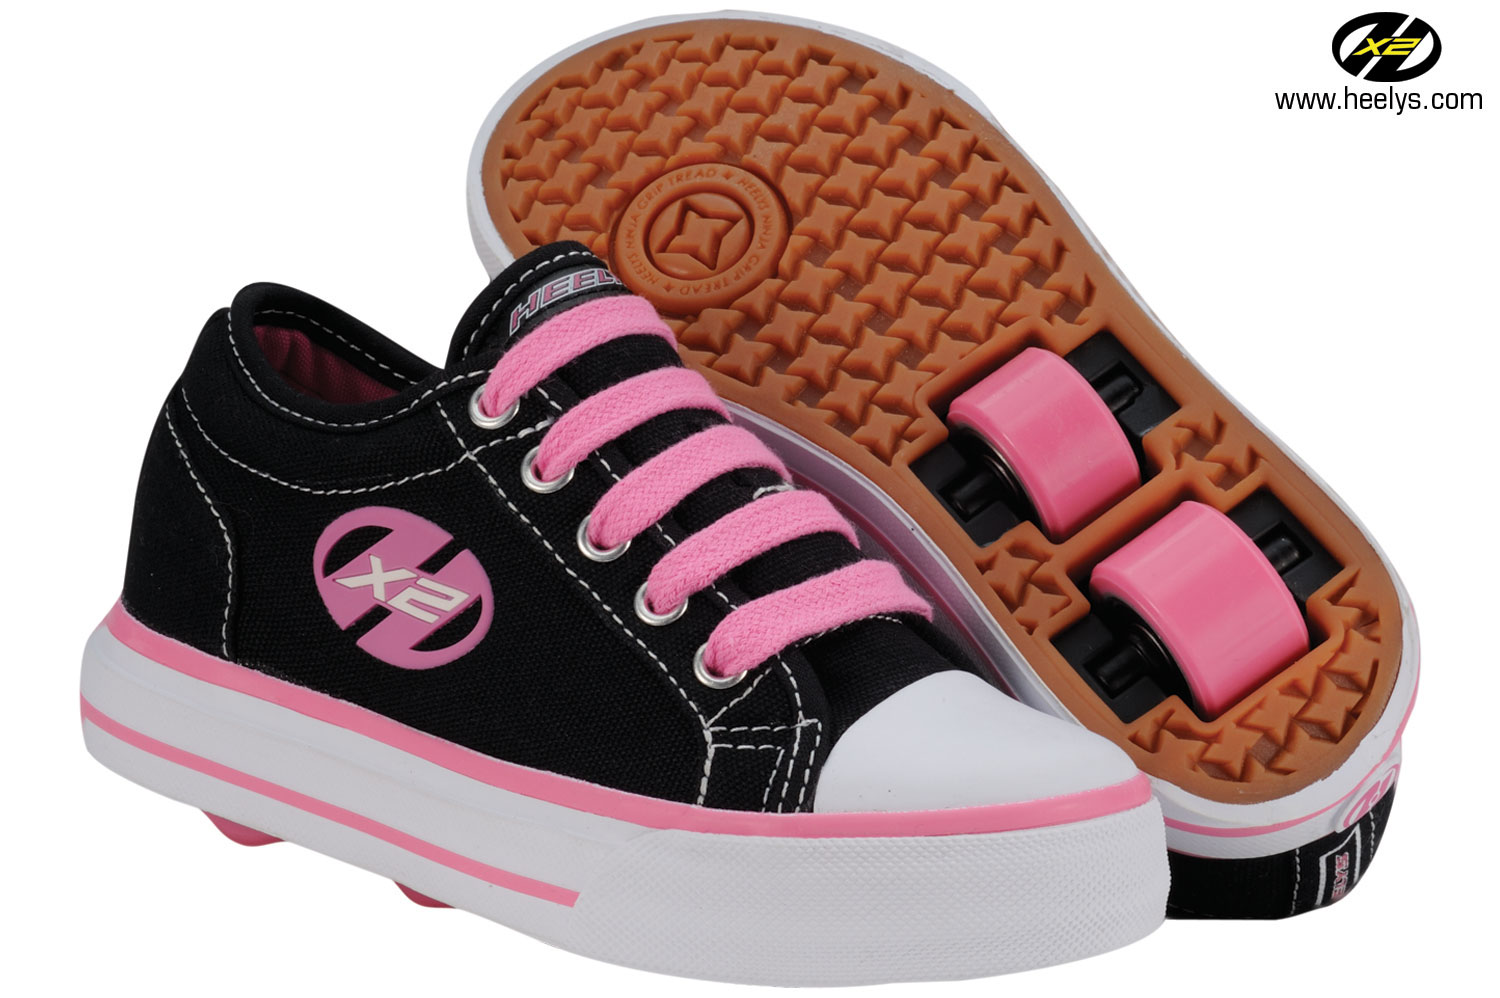 heelys for girls. Black Bedroom Furniture Sets. Home Design Ideas